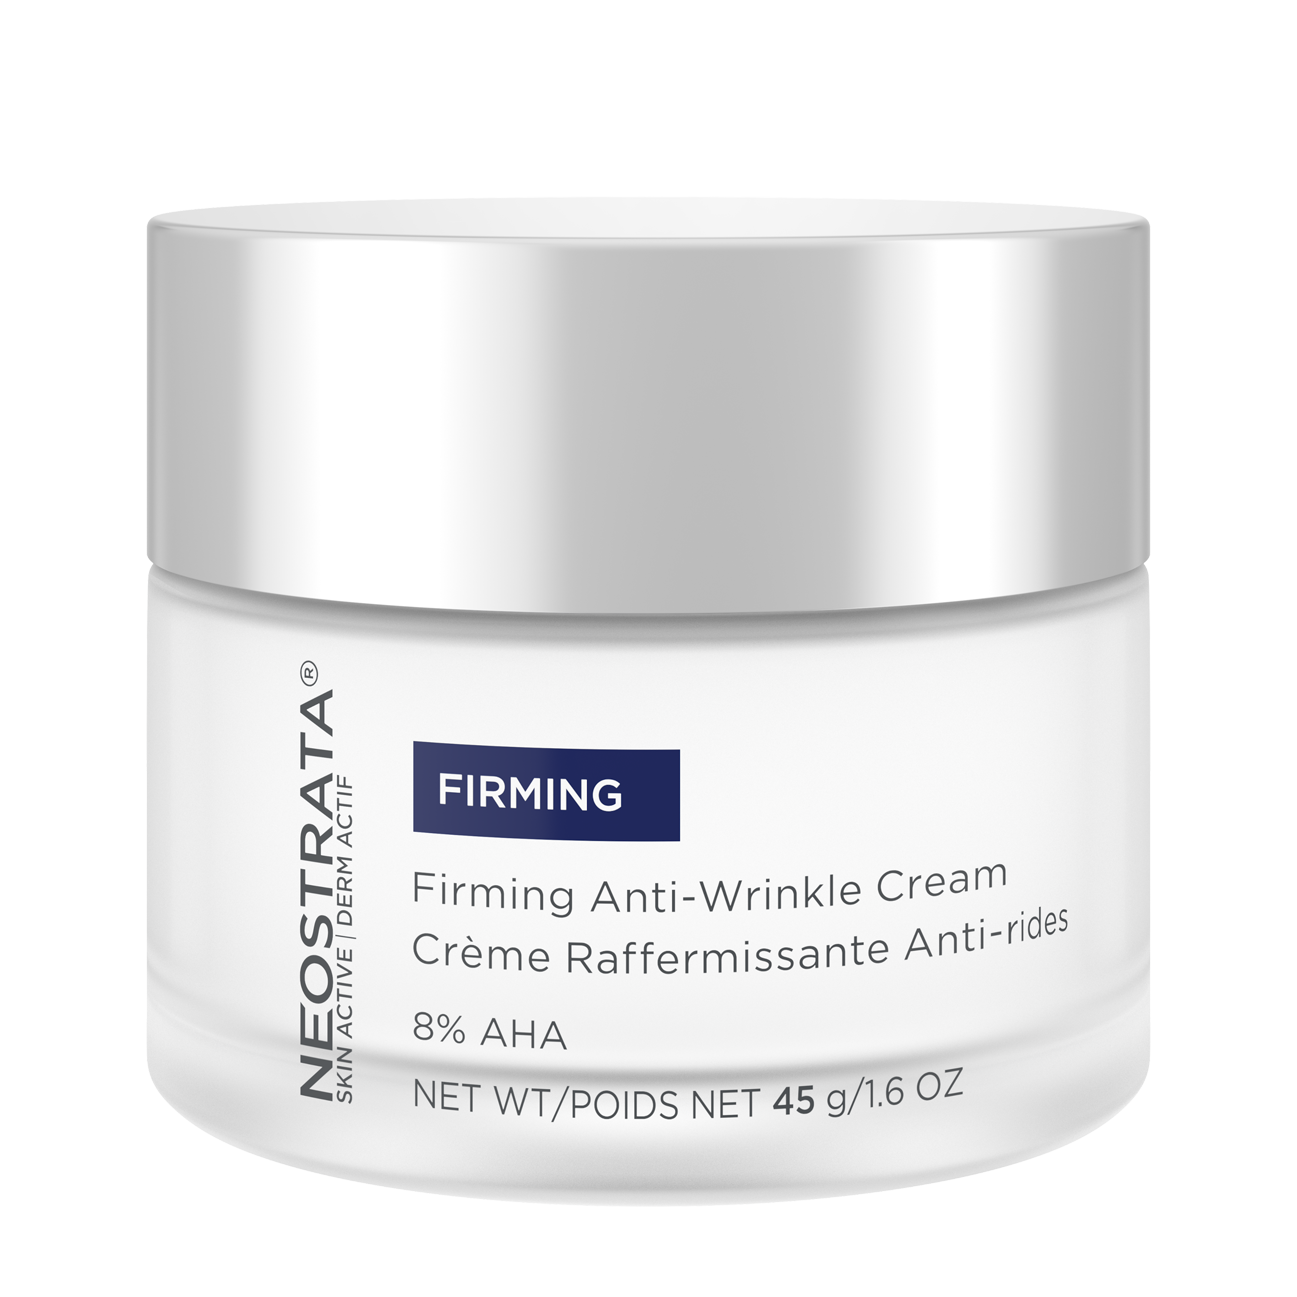 cliniderm age correct day cream